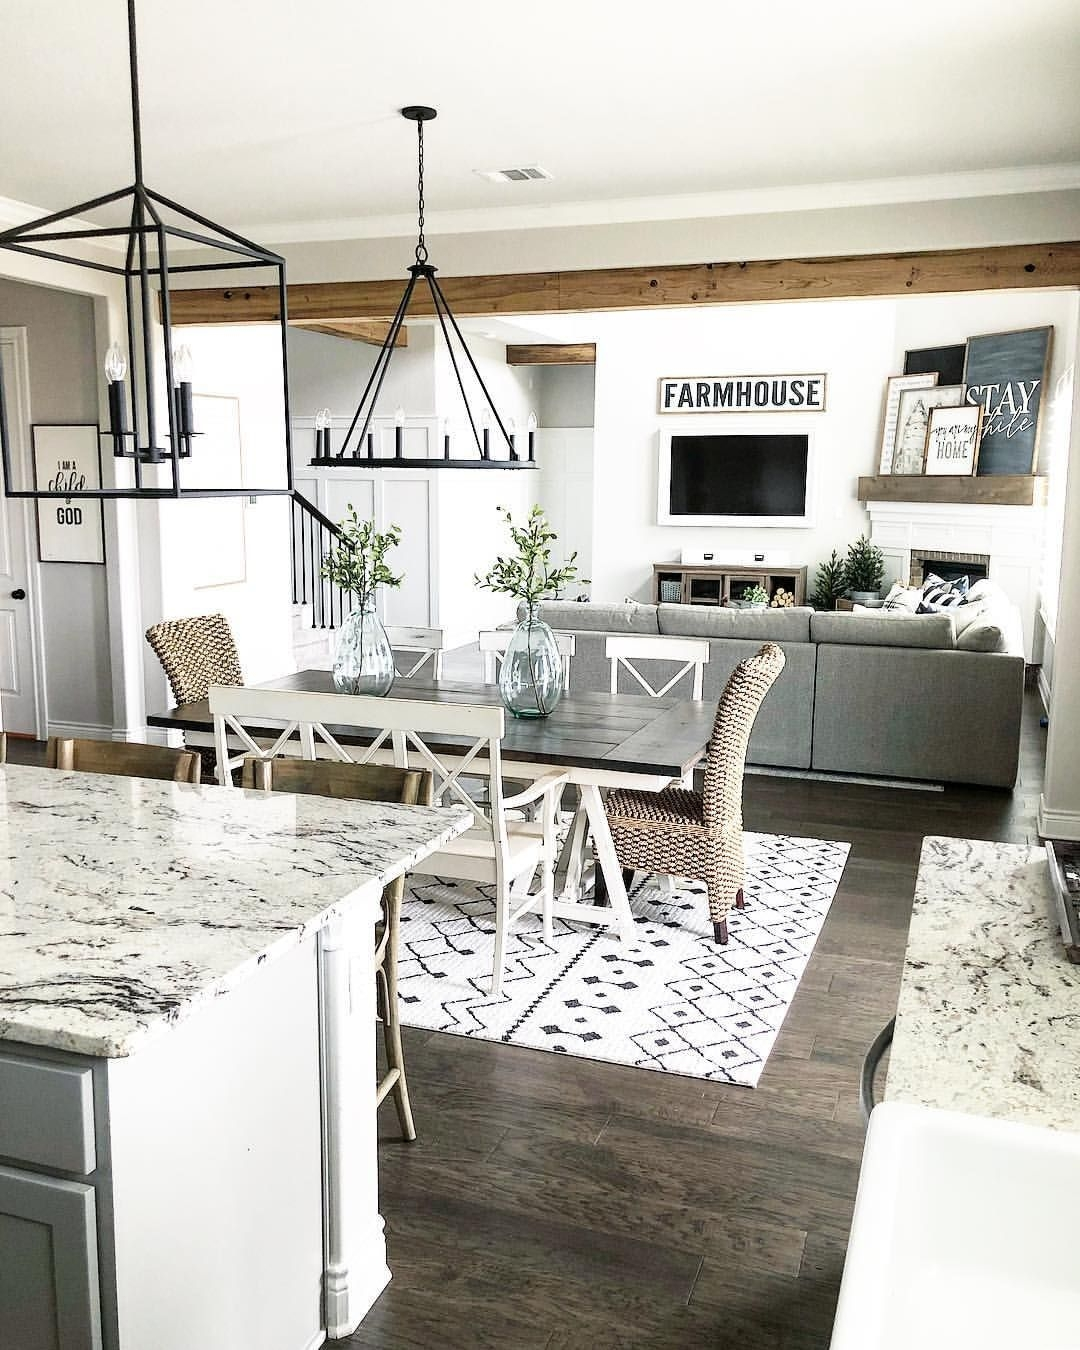 Farmhouse Style Open Layout With Kitchen Dining Room And Living Room Farmhousestyle Greatroom